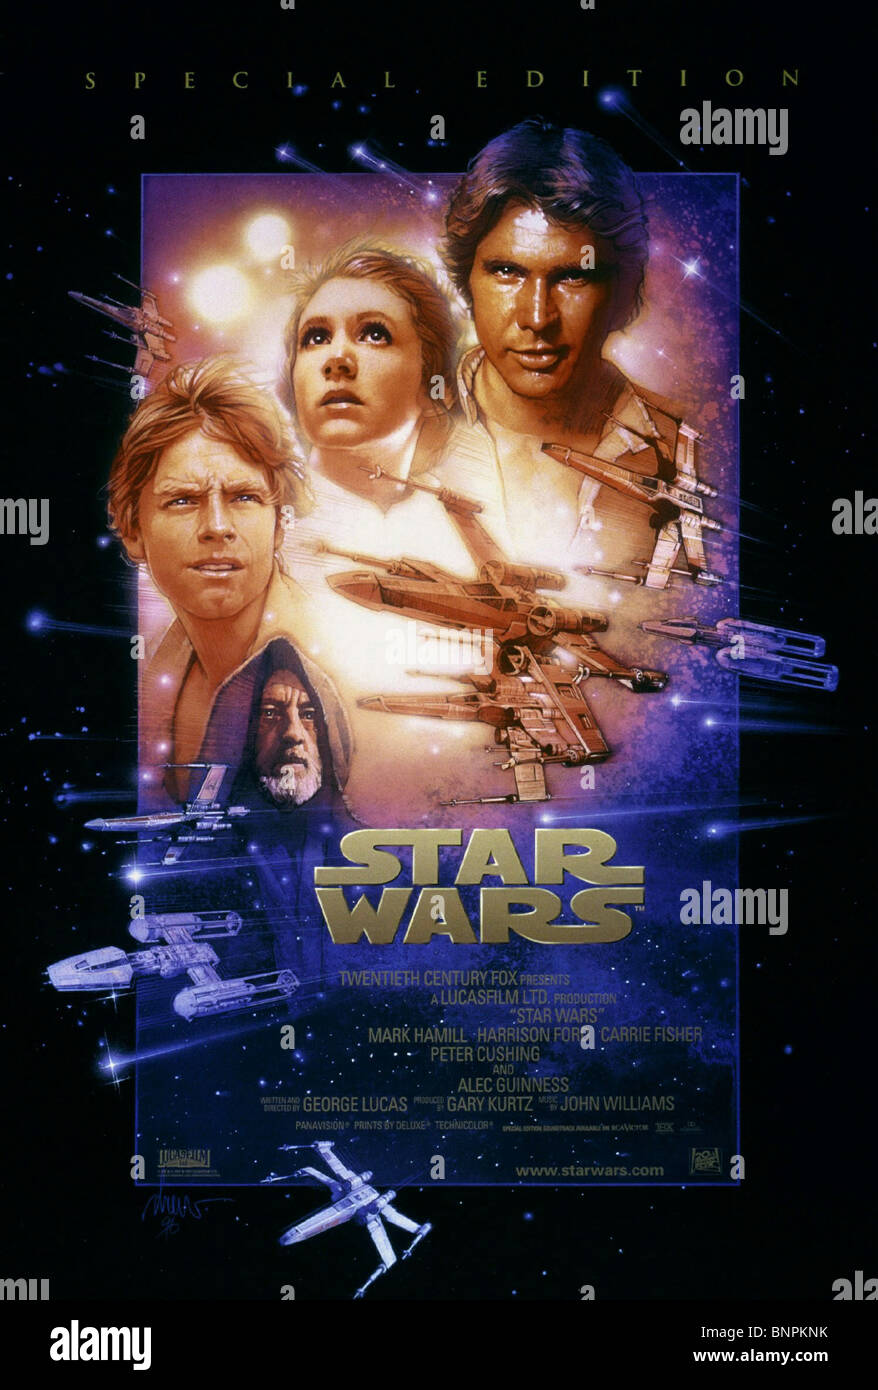 MARK HAMILL, ALEC GUINNESS, CARRIE FISHER, HARRISON FORD POSTER, STAR WARS: EPISODE IV - A NEW HOPE, 1977 - Stock Image